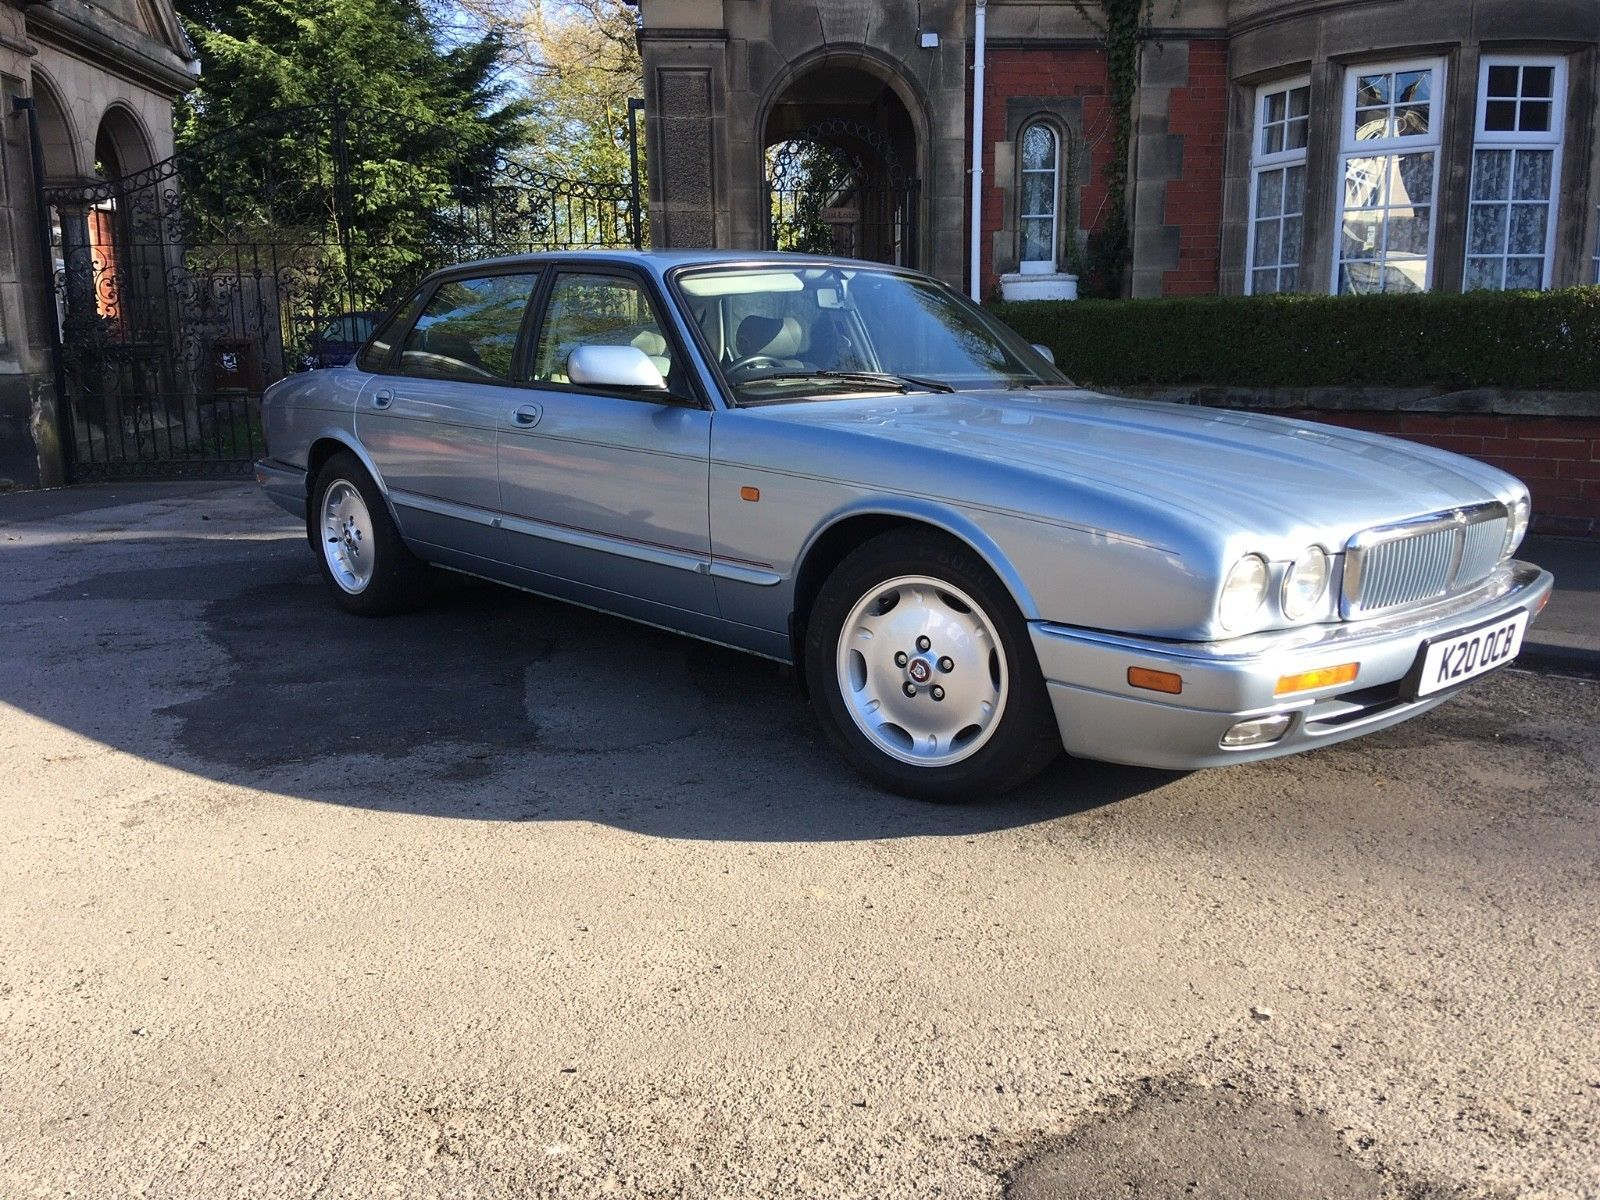 4ca6286e387d38f90dfdca3c8fc6d22a Take A Look About 1990 Jaguar Xj6